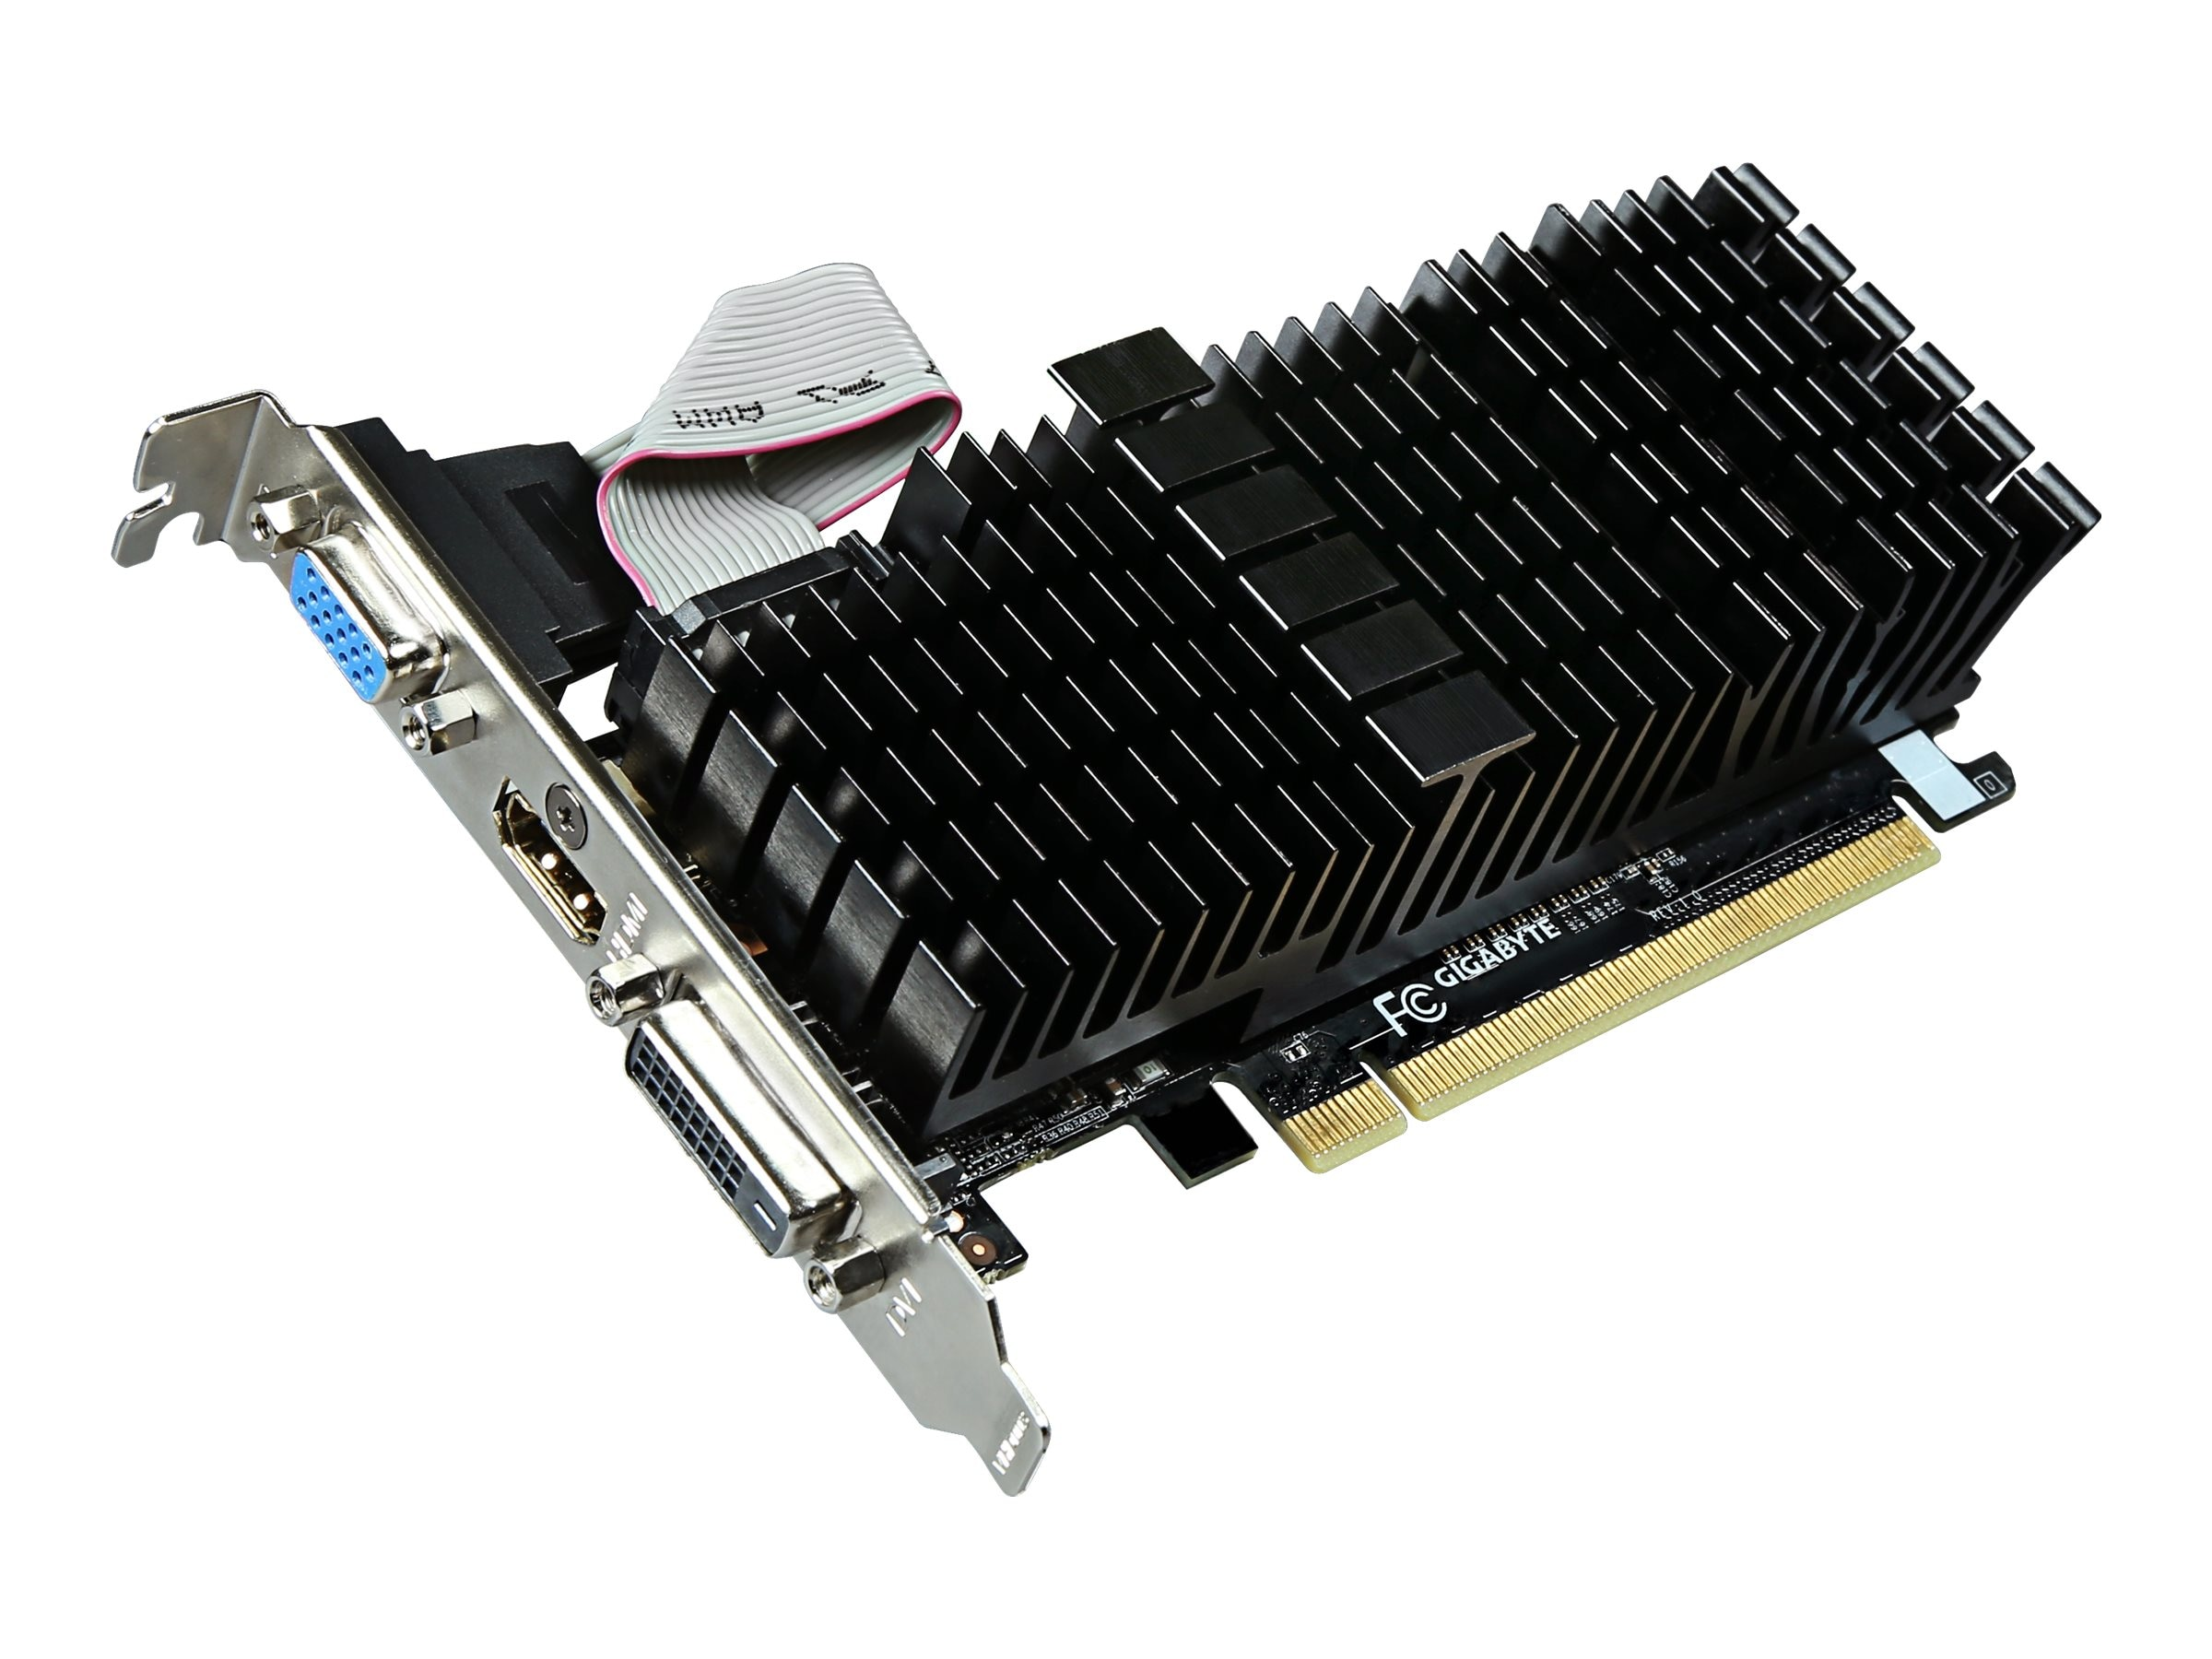 Gigabyte Tech GeForce GT 710 PCIe 2.0 Low-Profile Graphics Card, 2GB DDR3